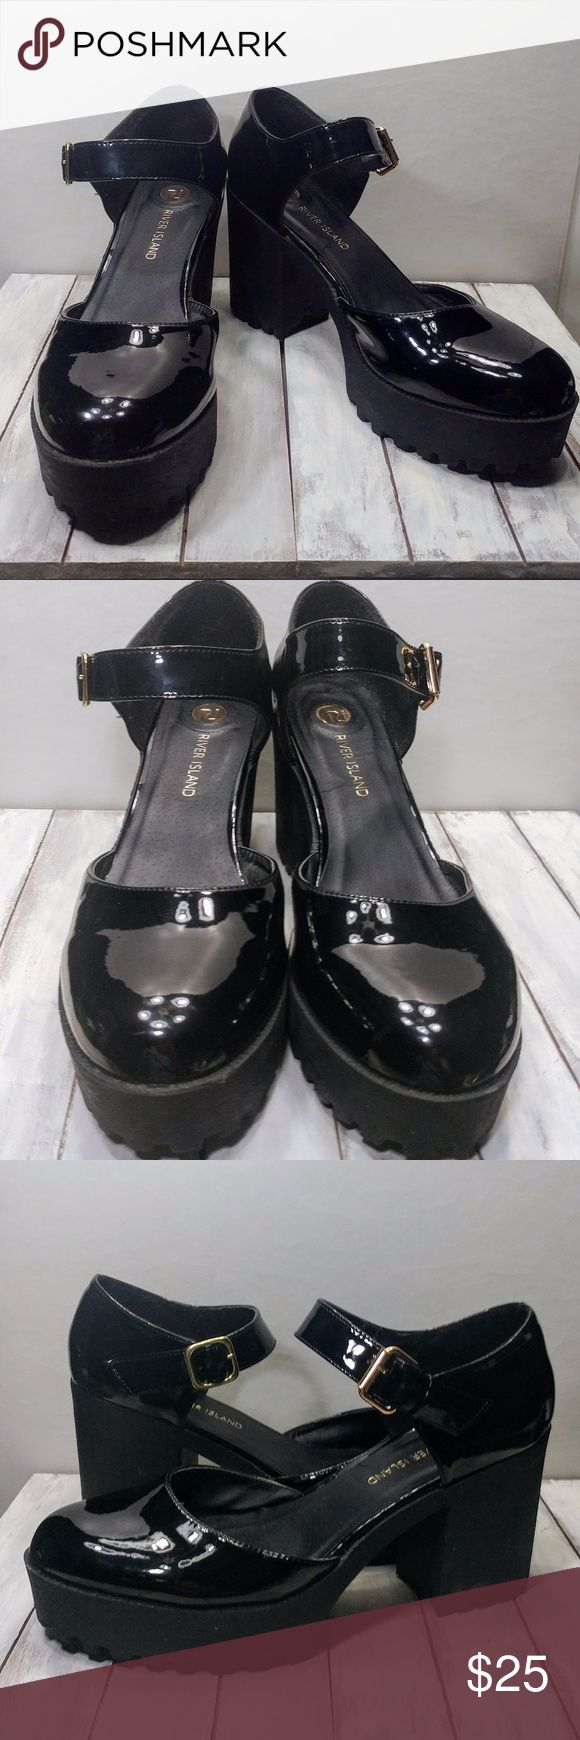 """River Island Chunky Platform Mary Janes These awesome platforms remind me of those cool grunge girls from the 90s! Euro size 41, heels are about 4"""". Excellent used condition, normal signs of wear. River Island Shoes Platforms"""